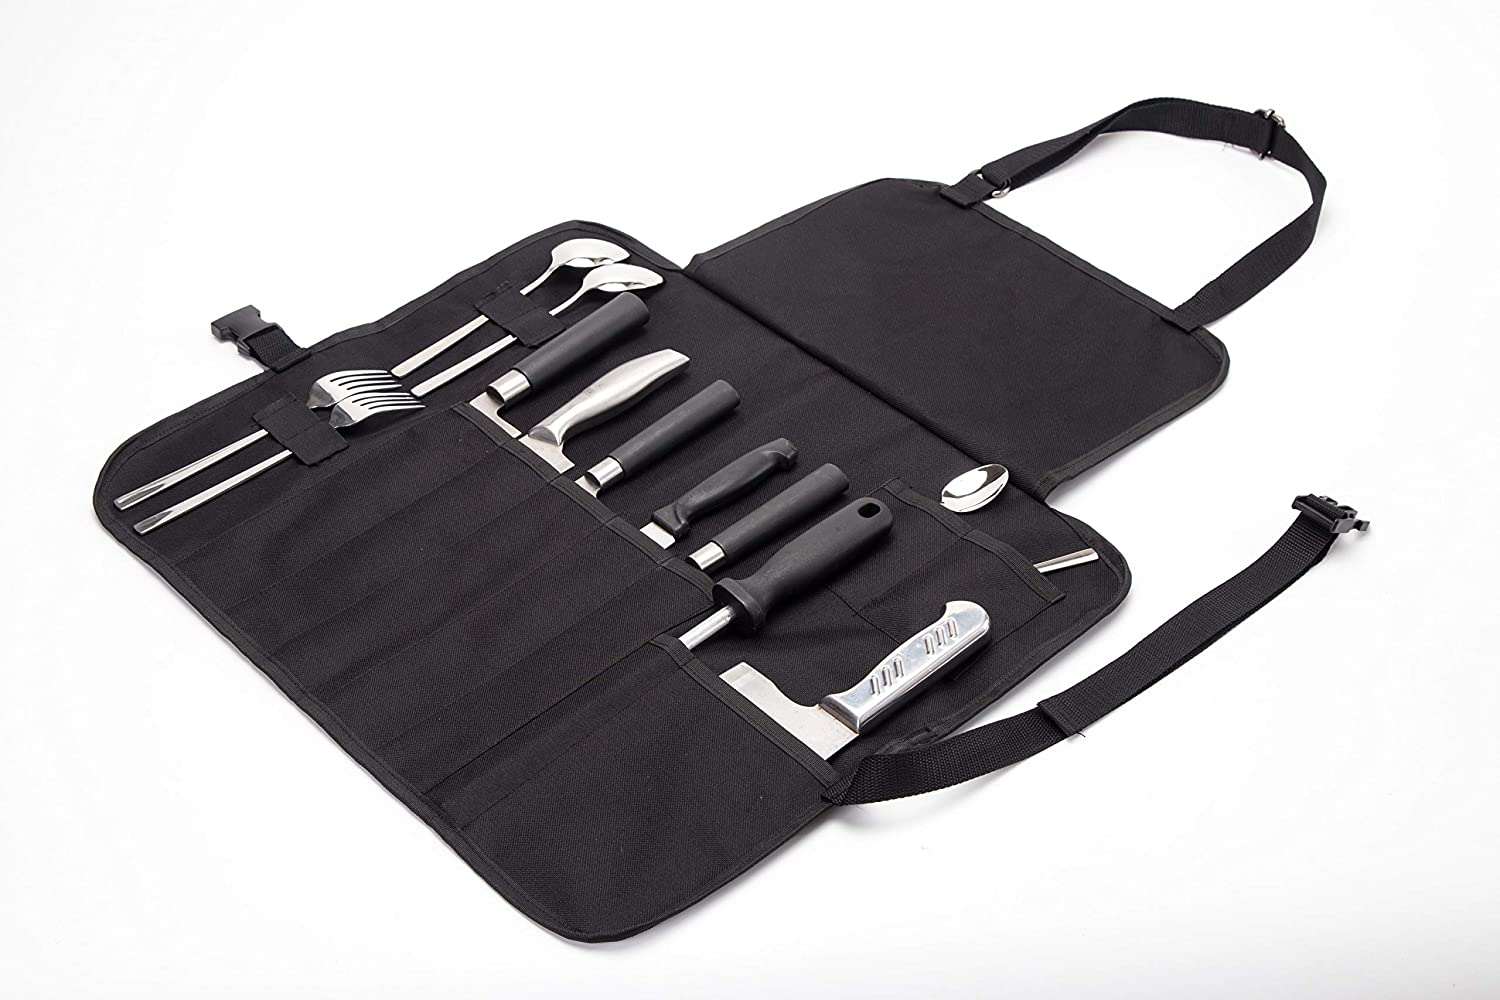 Chef's Knife Roll Up Multi Purpose BBQ Grill Knife Tool Apron Storage Tool Roll Pouch Storage Professional Gift for Culinary Student or Chef DD30